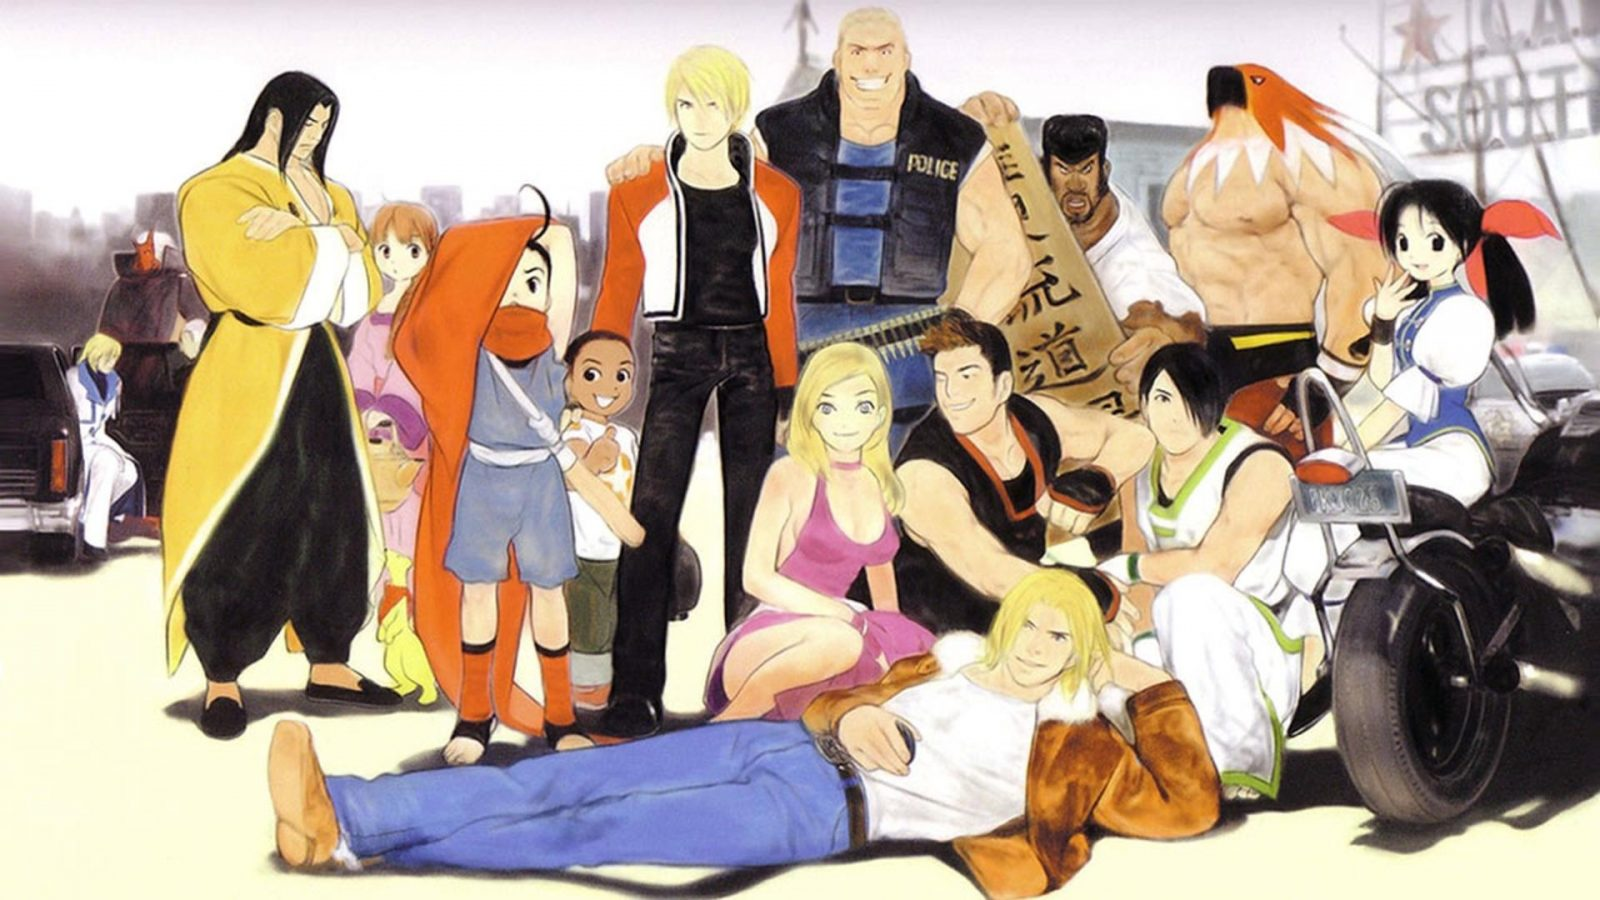 Garou: Mark of the Wolves Turns 20 Today—Here's a Glimpse of the Sequel That Never Quite Happened